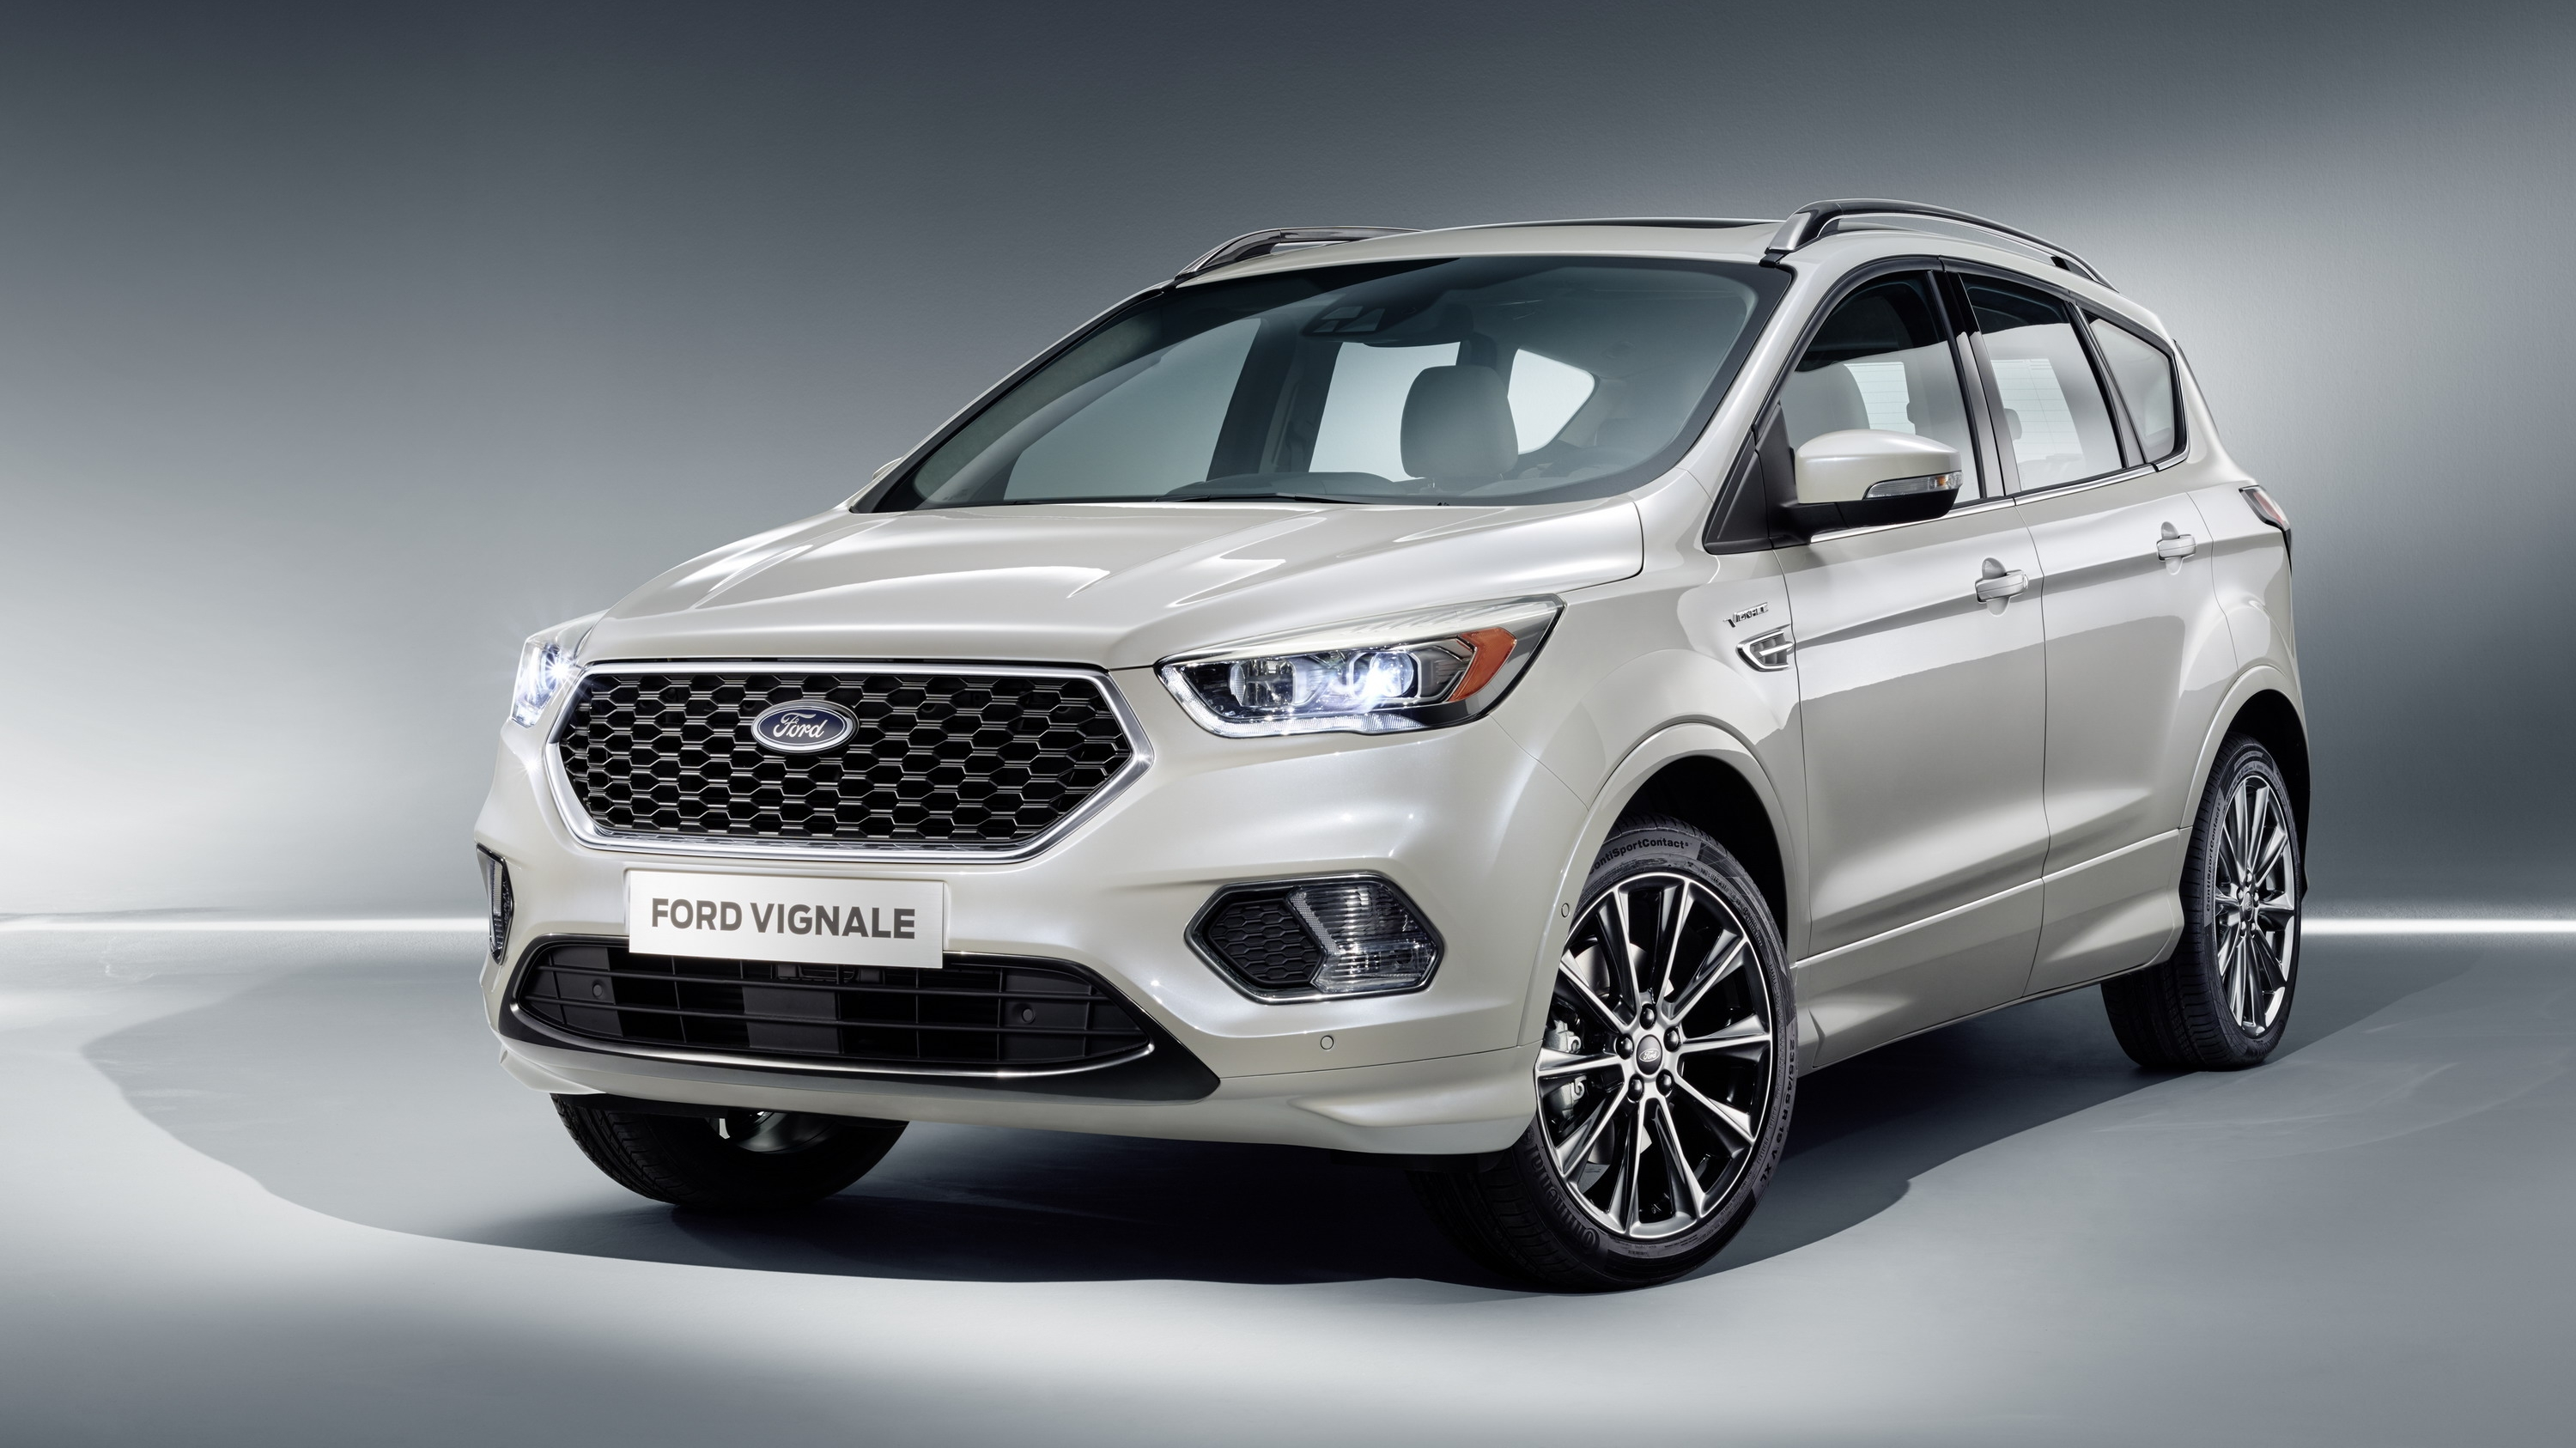 2016 Ford Kuga Vignale Concept Pictures, Photos, Wallpapers. | Top Speed